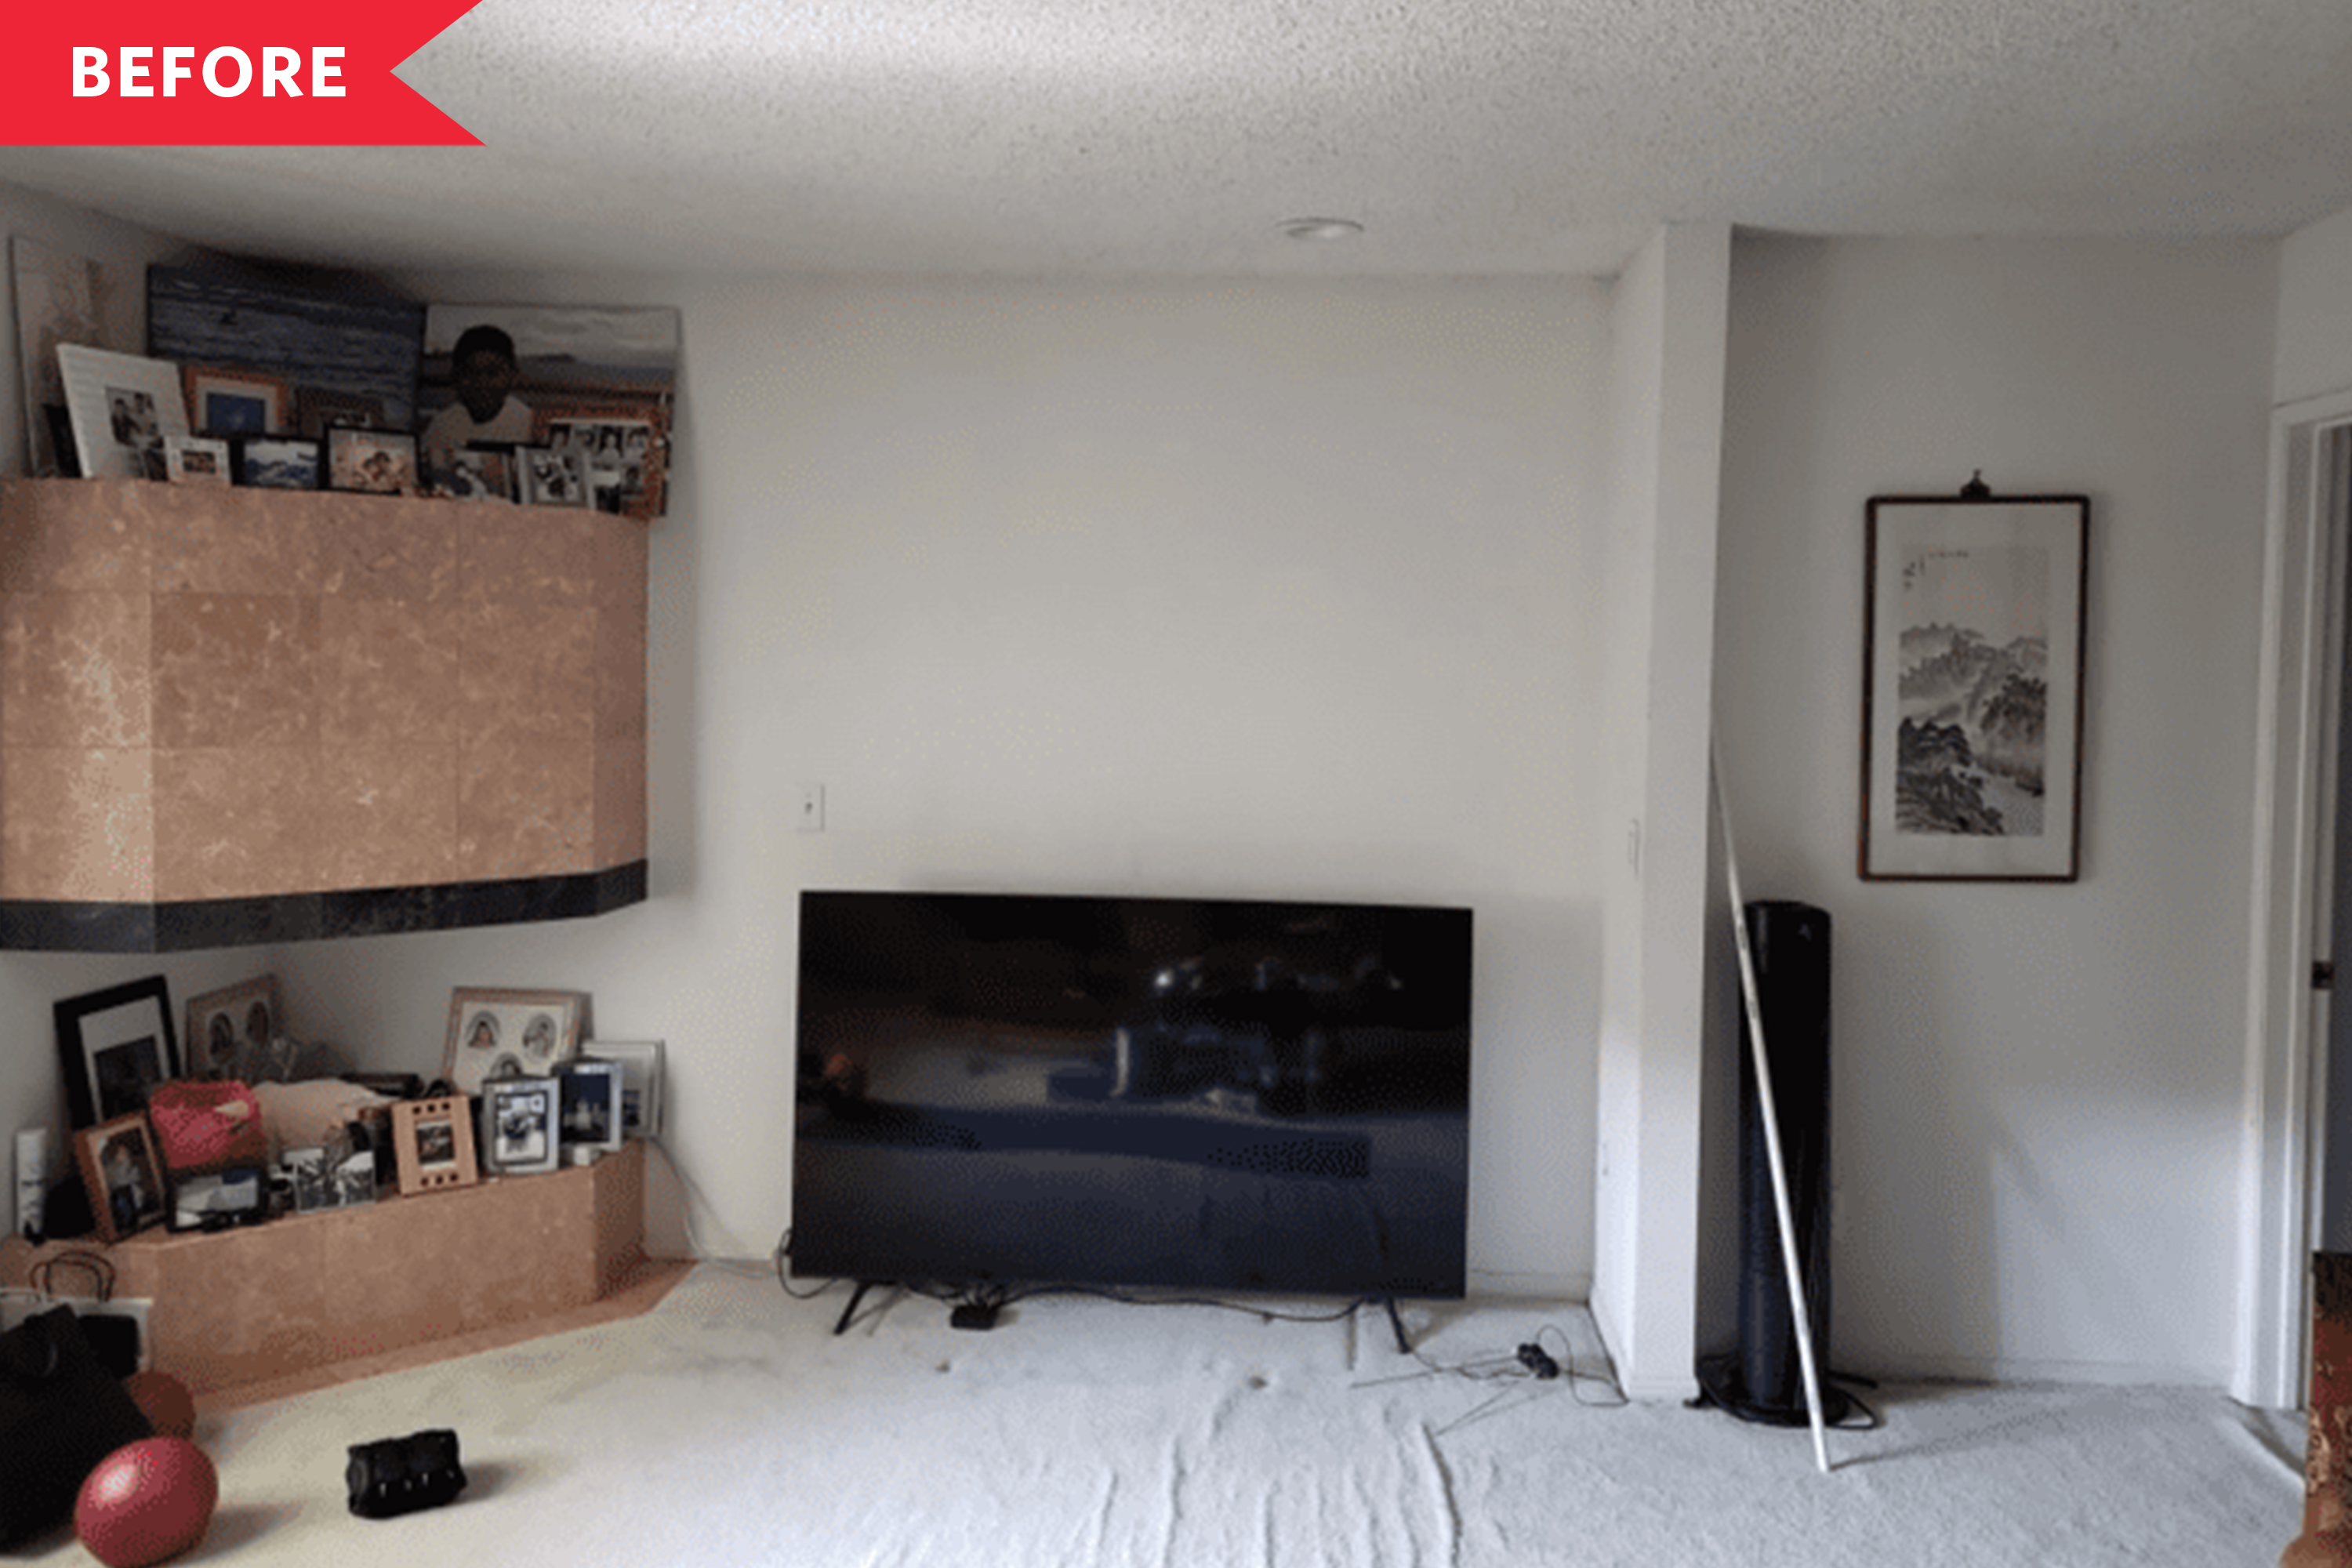 Before and After: A Living Room's Awkward Corner Is Transformed for Under $500